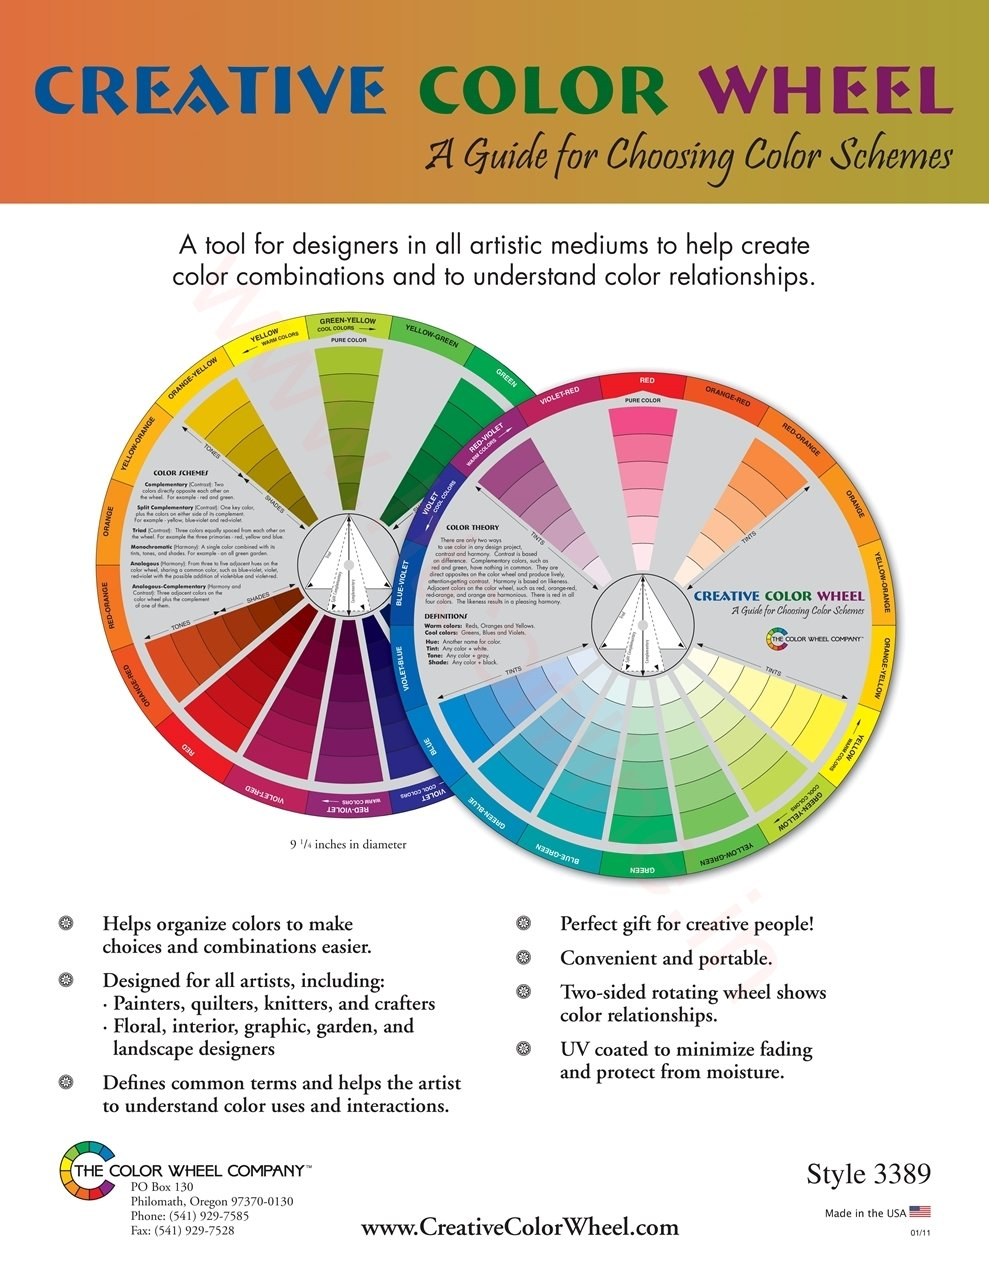 Creative Color Wheel-The Color Wheel Co. - 3389